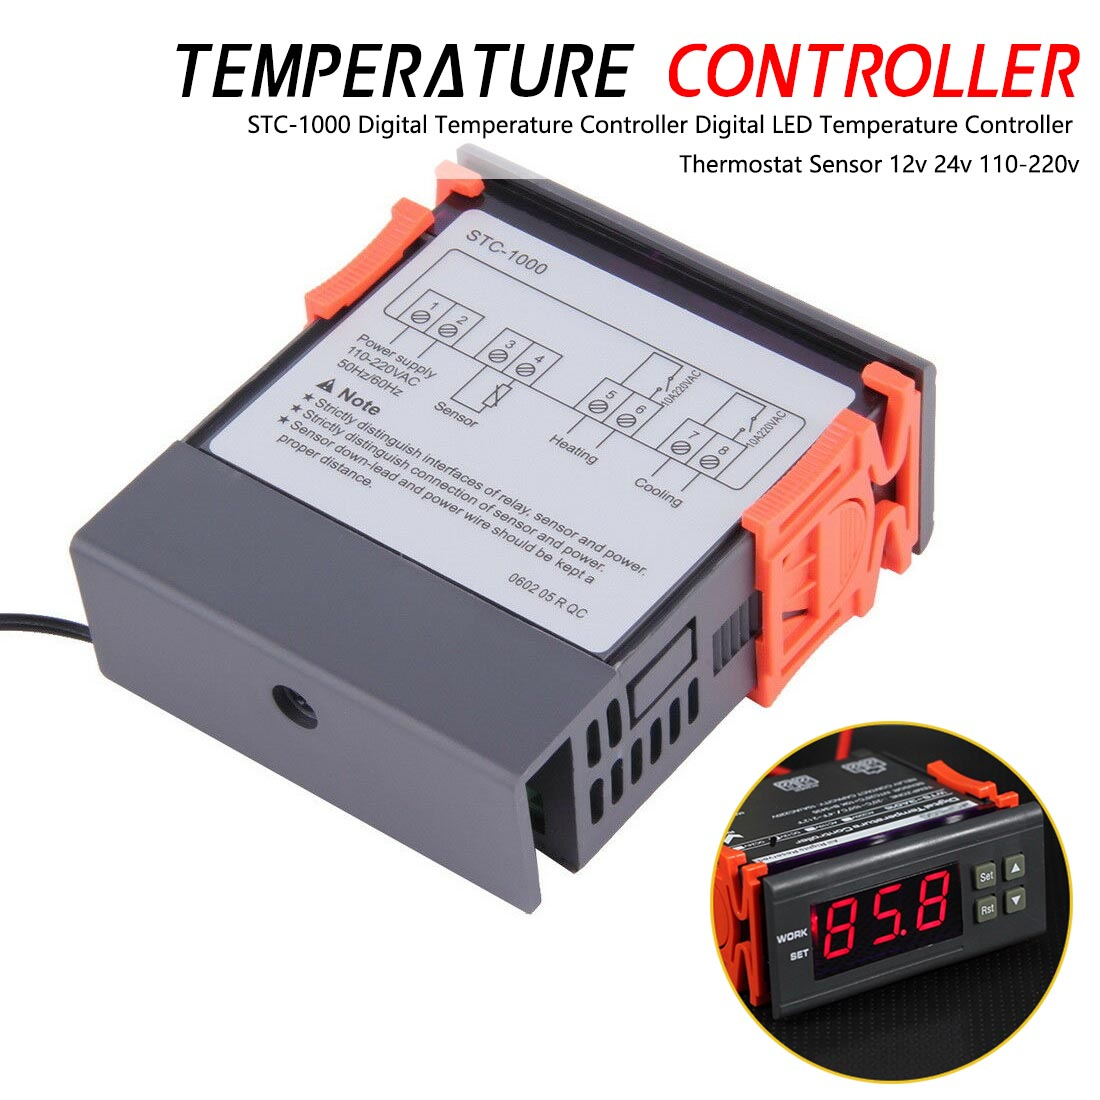 Digital Temperature Controller STC-1000 Thermoregulator thermostat Heater Cooler